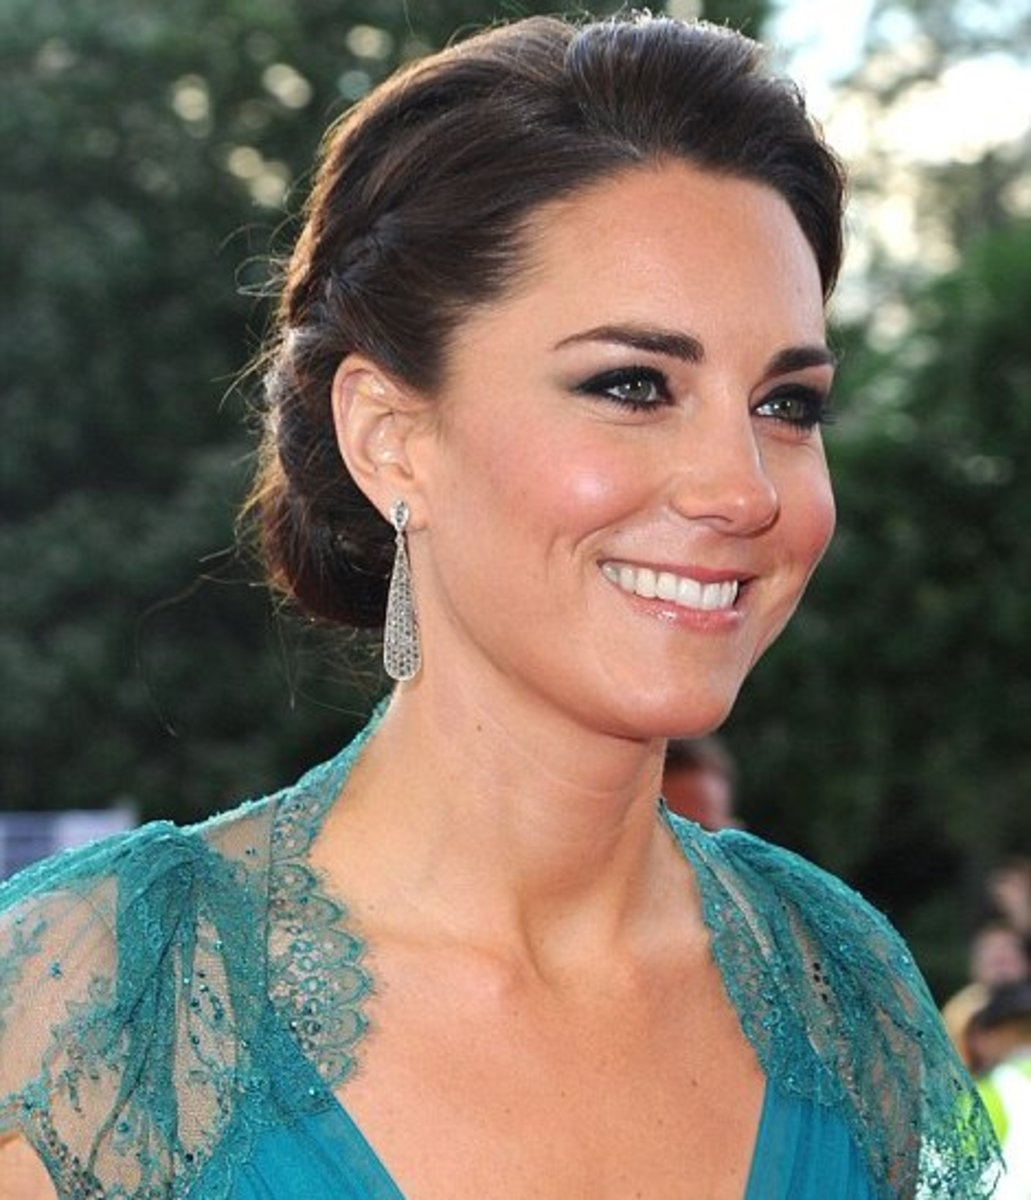 Kate Middleton's teardrop shaped earrings compliment her neckline